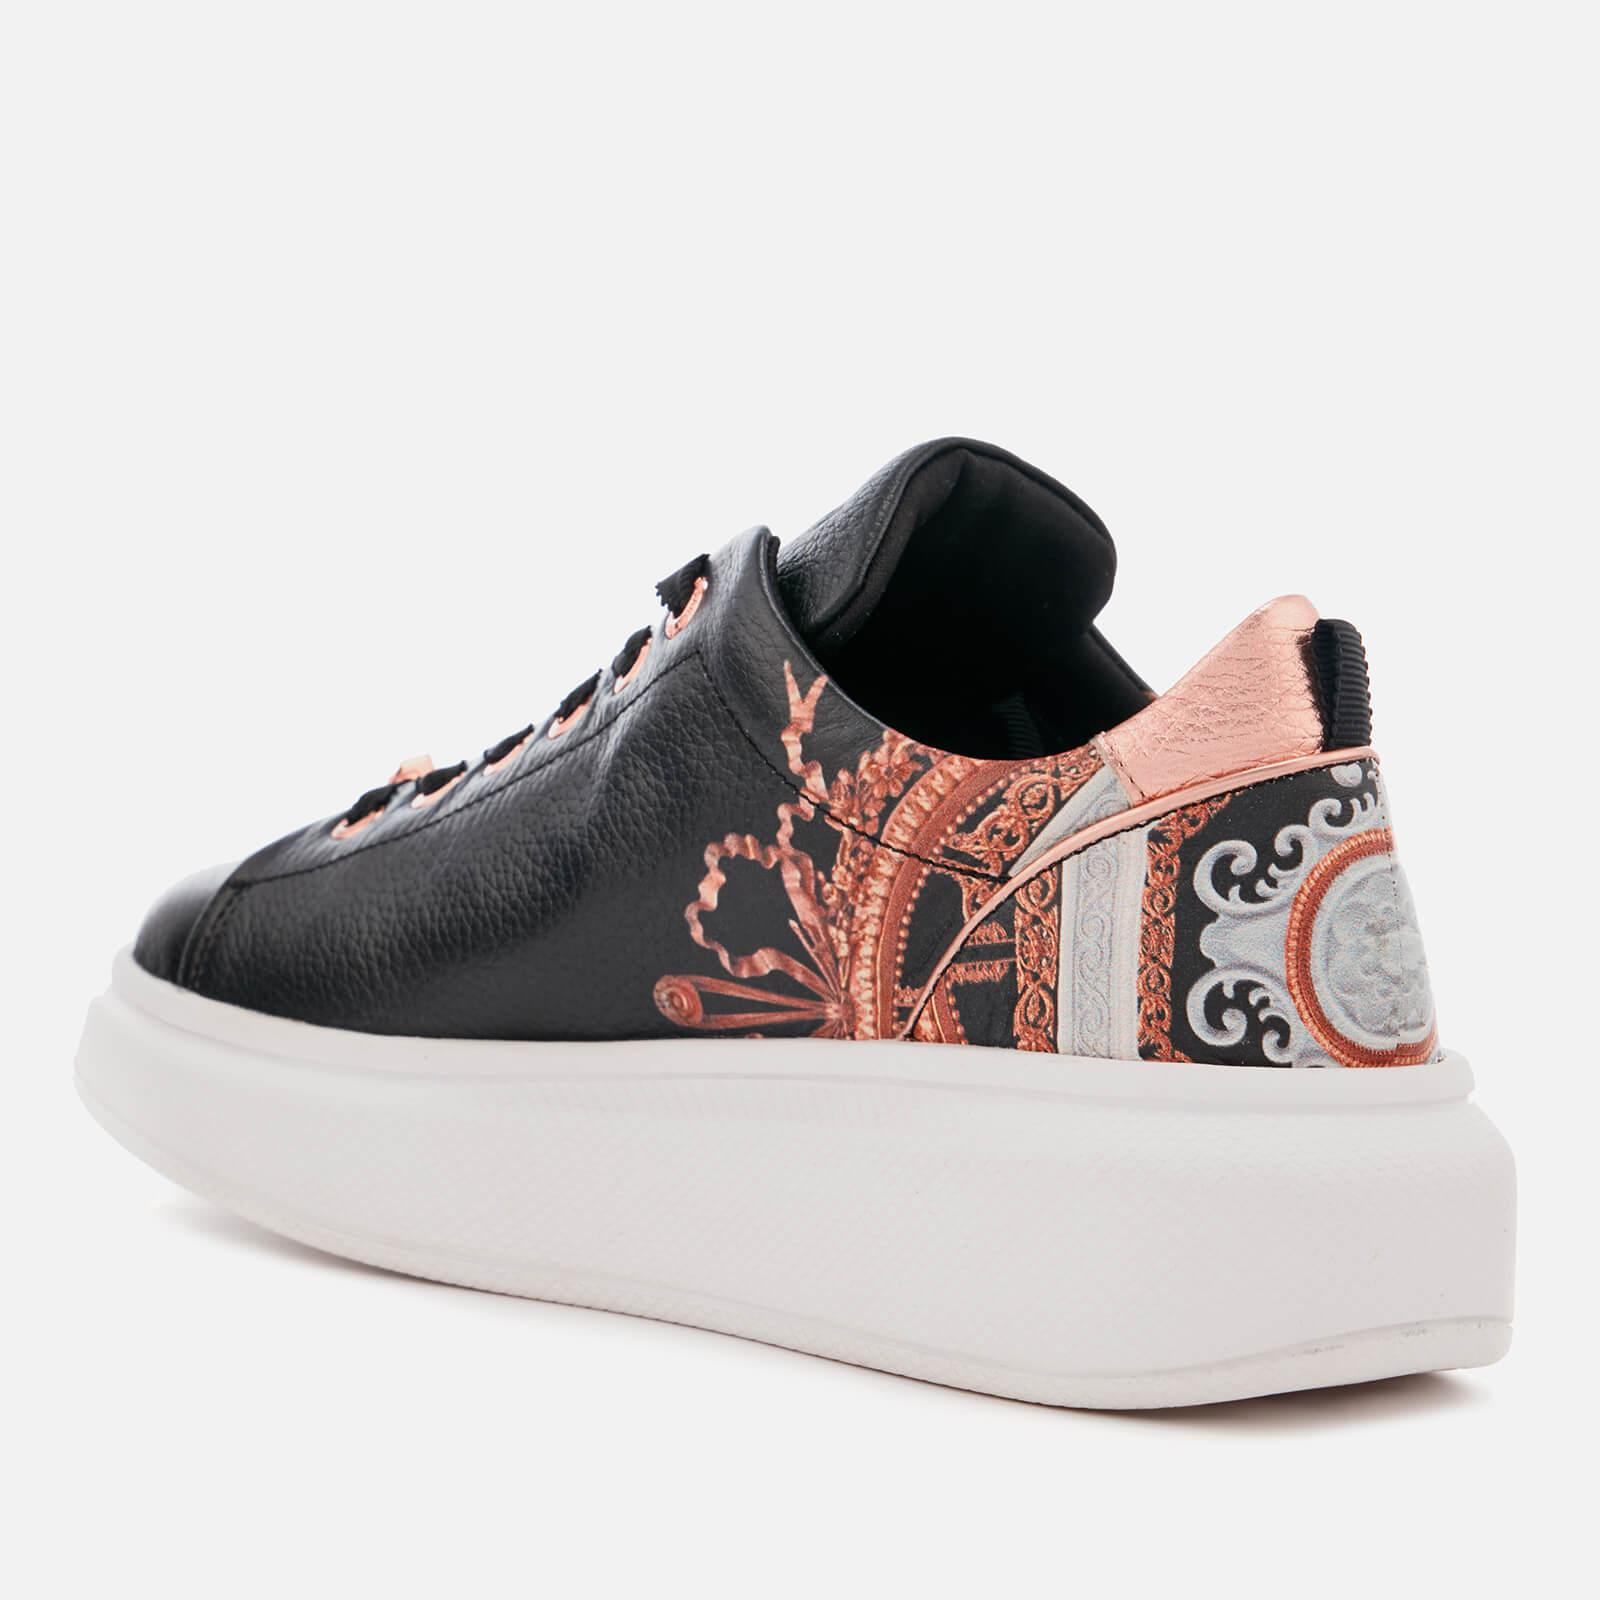 faad55269630 Ted Baker Ailbe Leather Platform Trainers in Black - Lyst